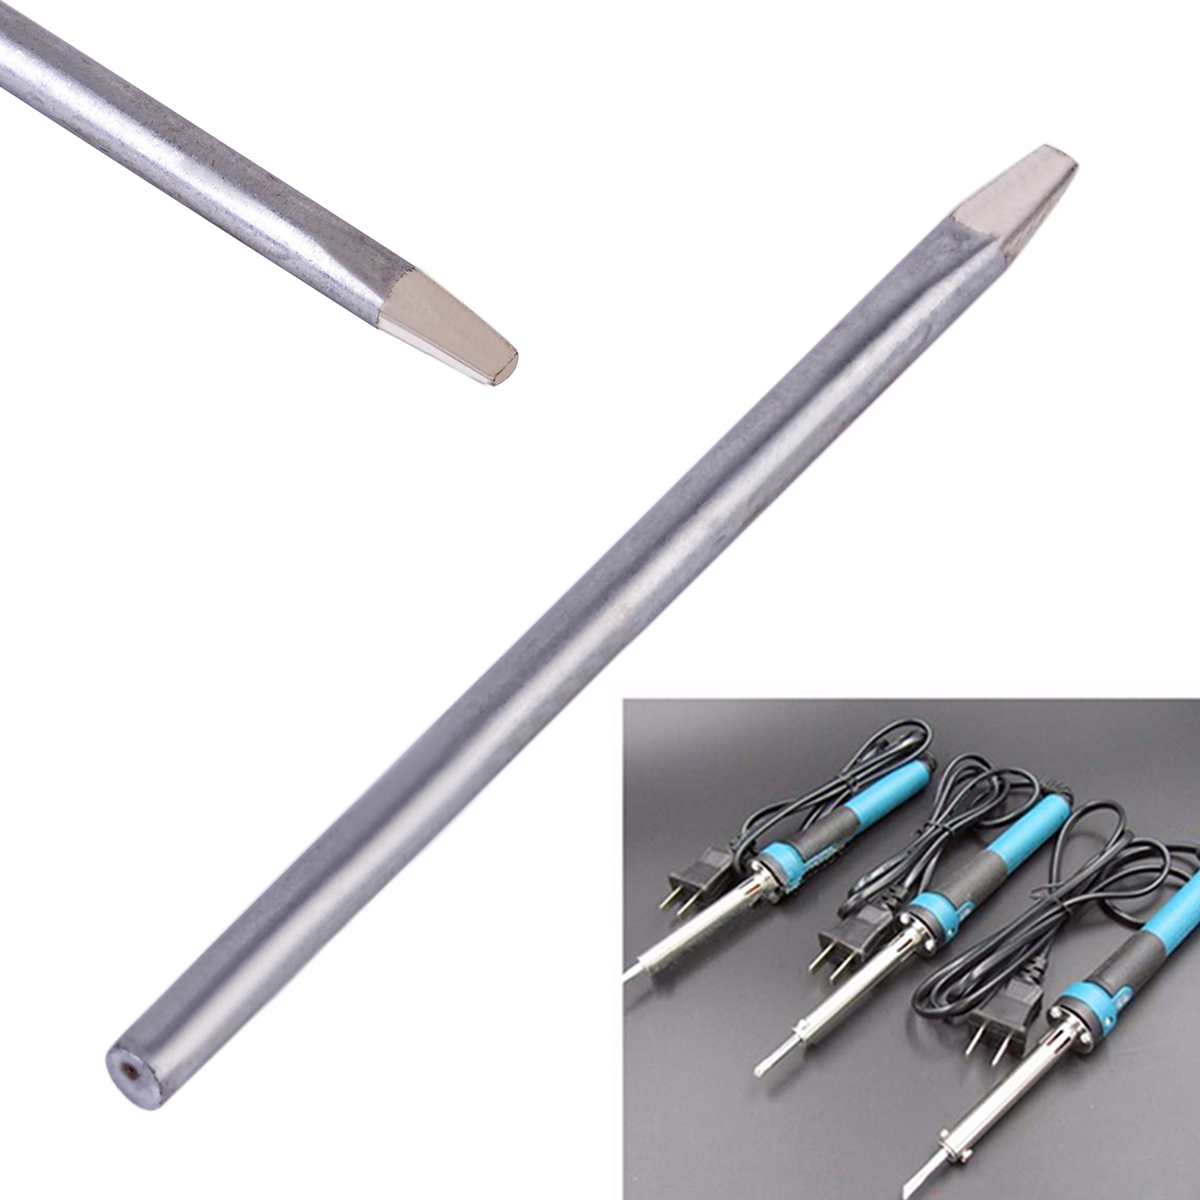 1pc 3.7mm 30W Soldering Tip Replaceable Electric Soldering Tools Iron Bit Welder Solder Tips For Power Tool 30w solder tip kit c 2b 4b d types